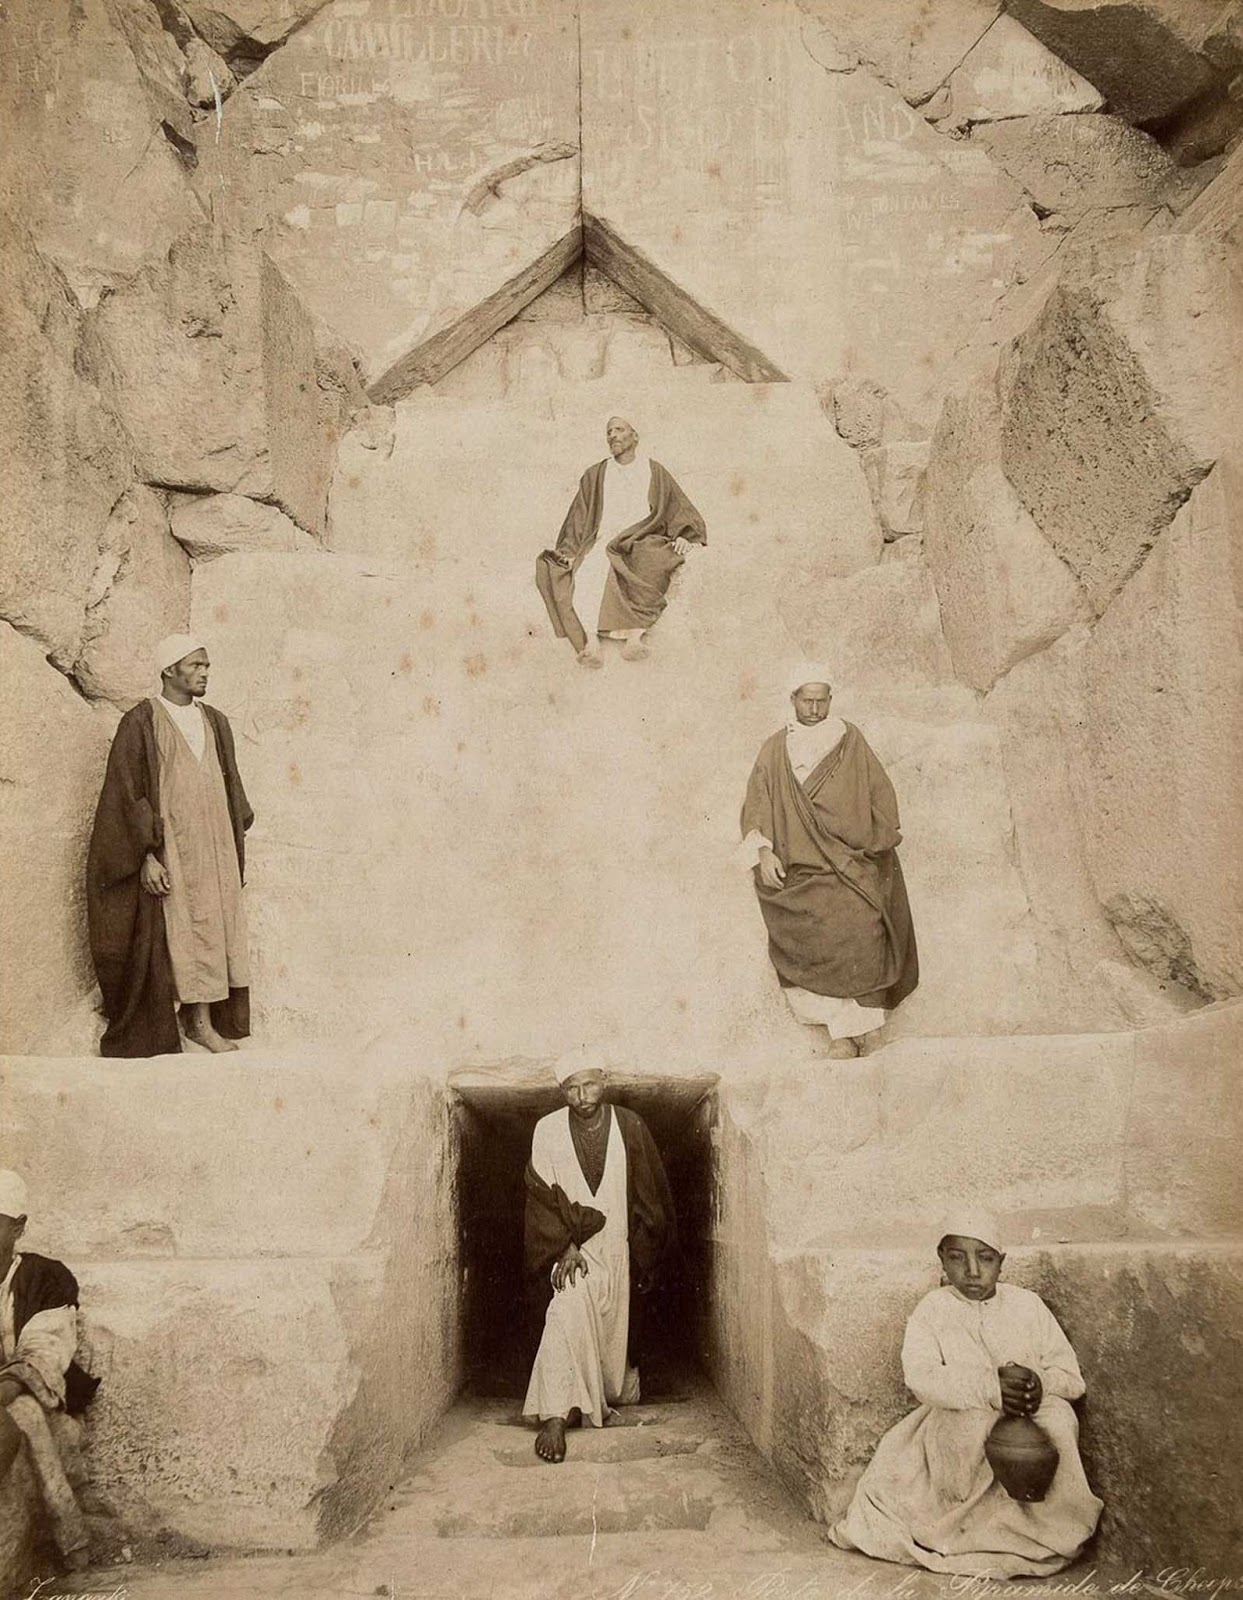 Men at the entrance to the Great Pyramid of Giza.